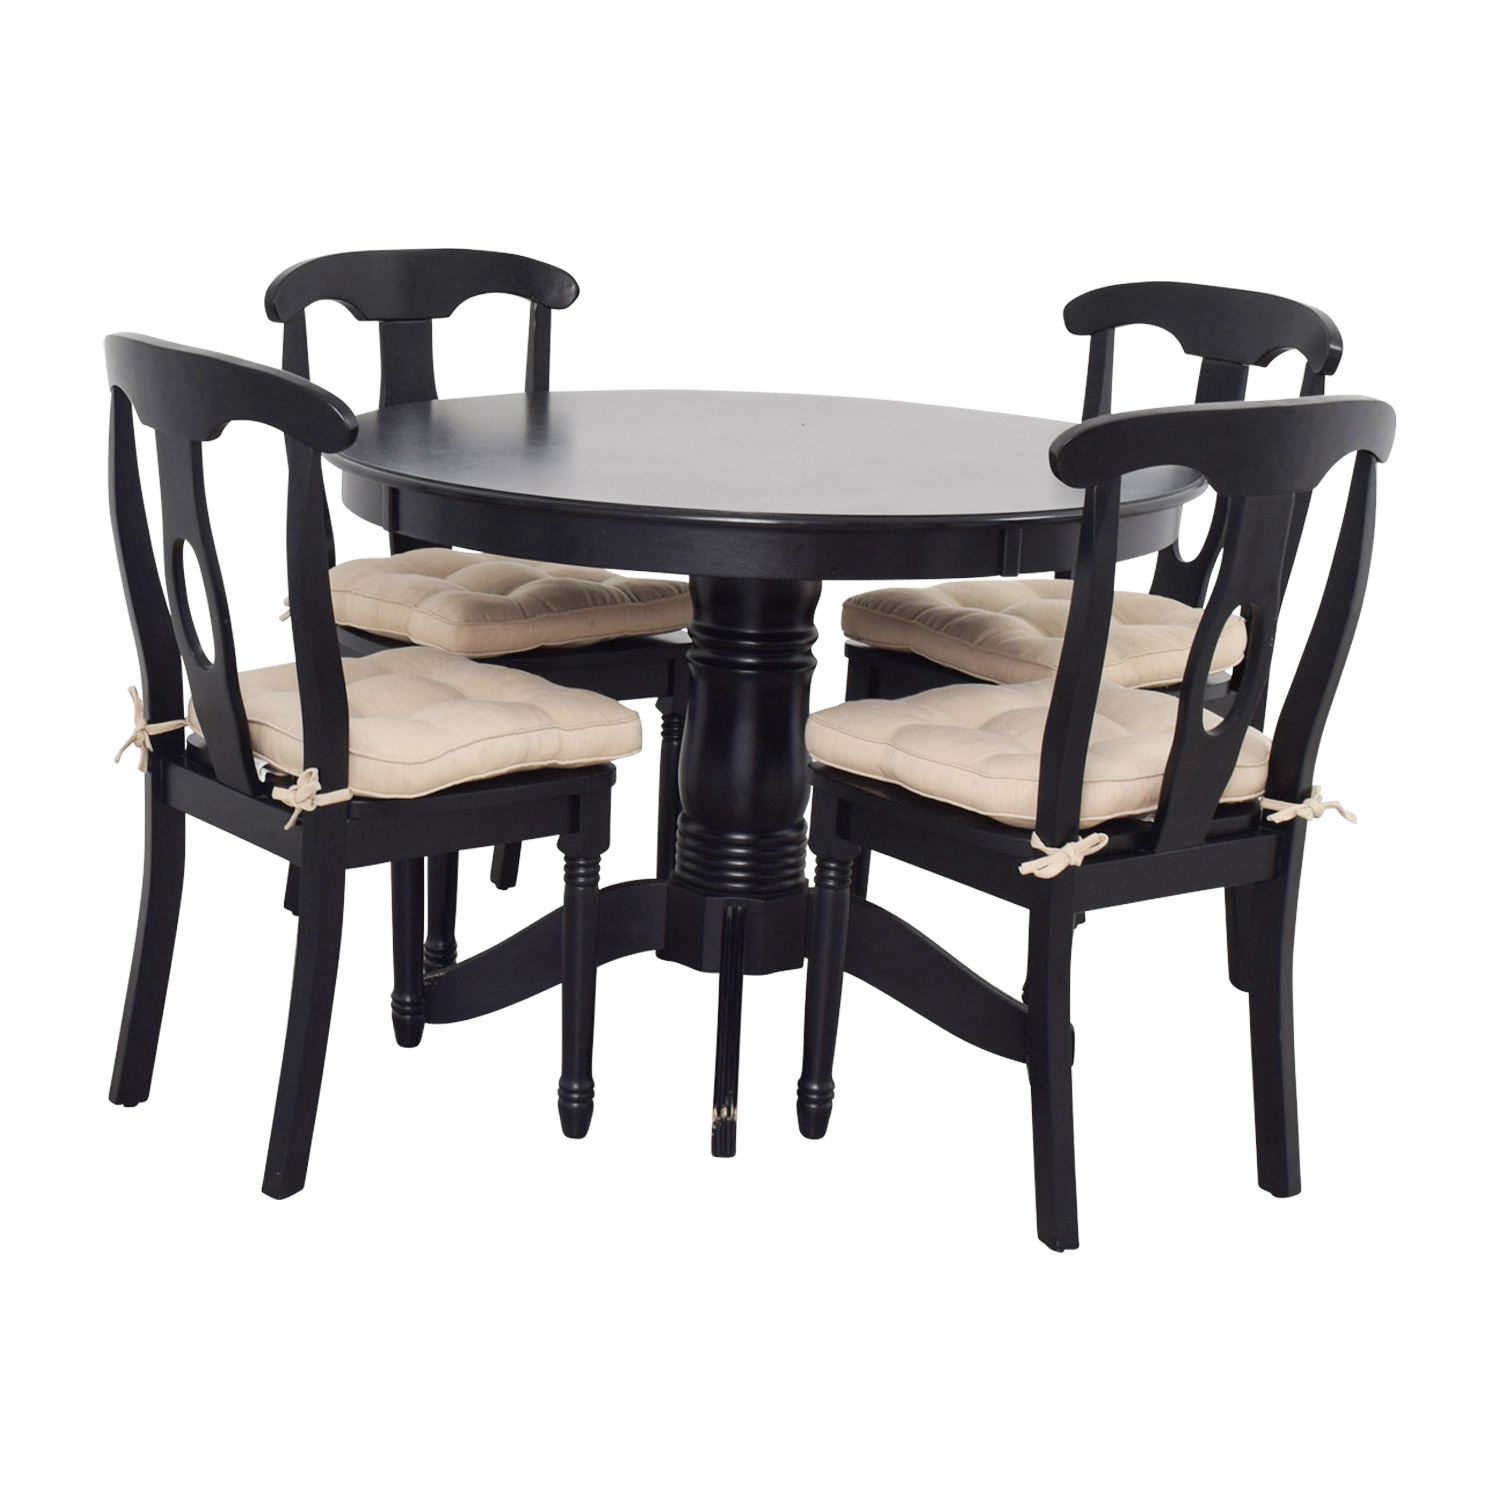 54 off martha stewart martha stewart dining set with beige upholstered chairs tables - Martha stewart dining room furniture ...